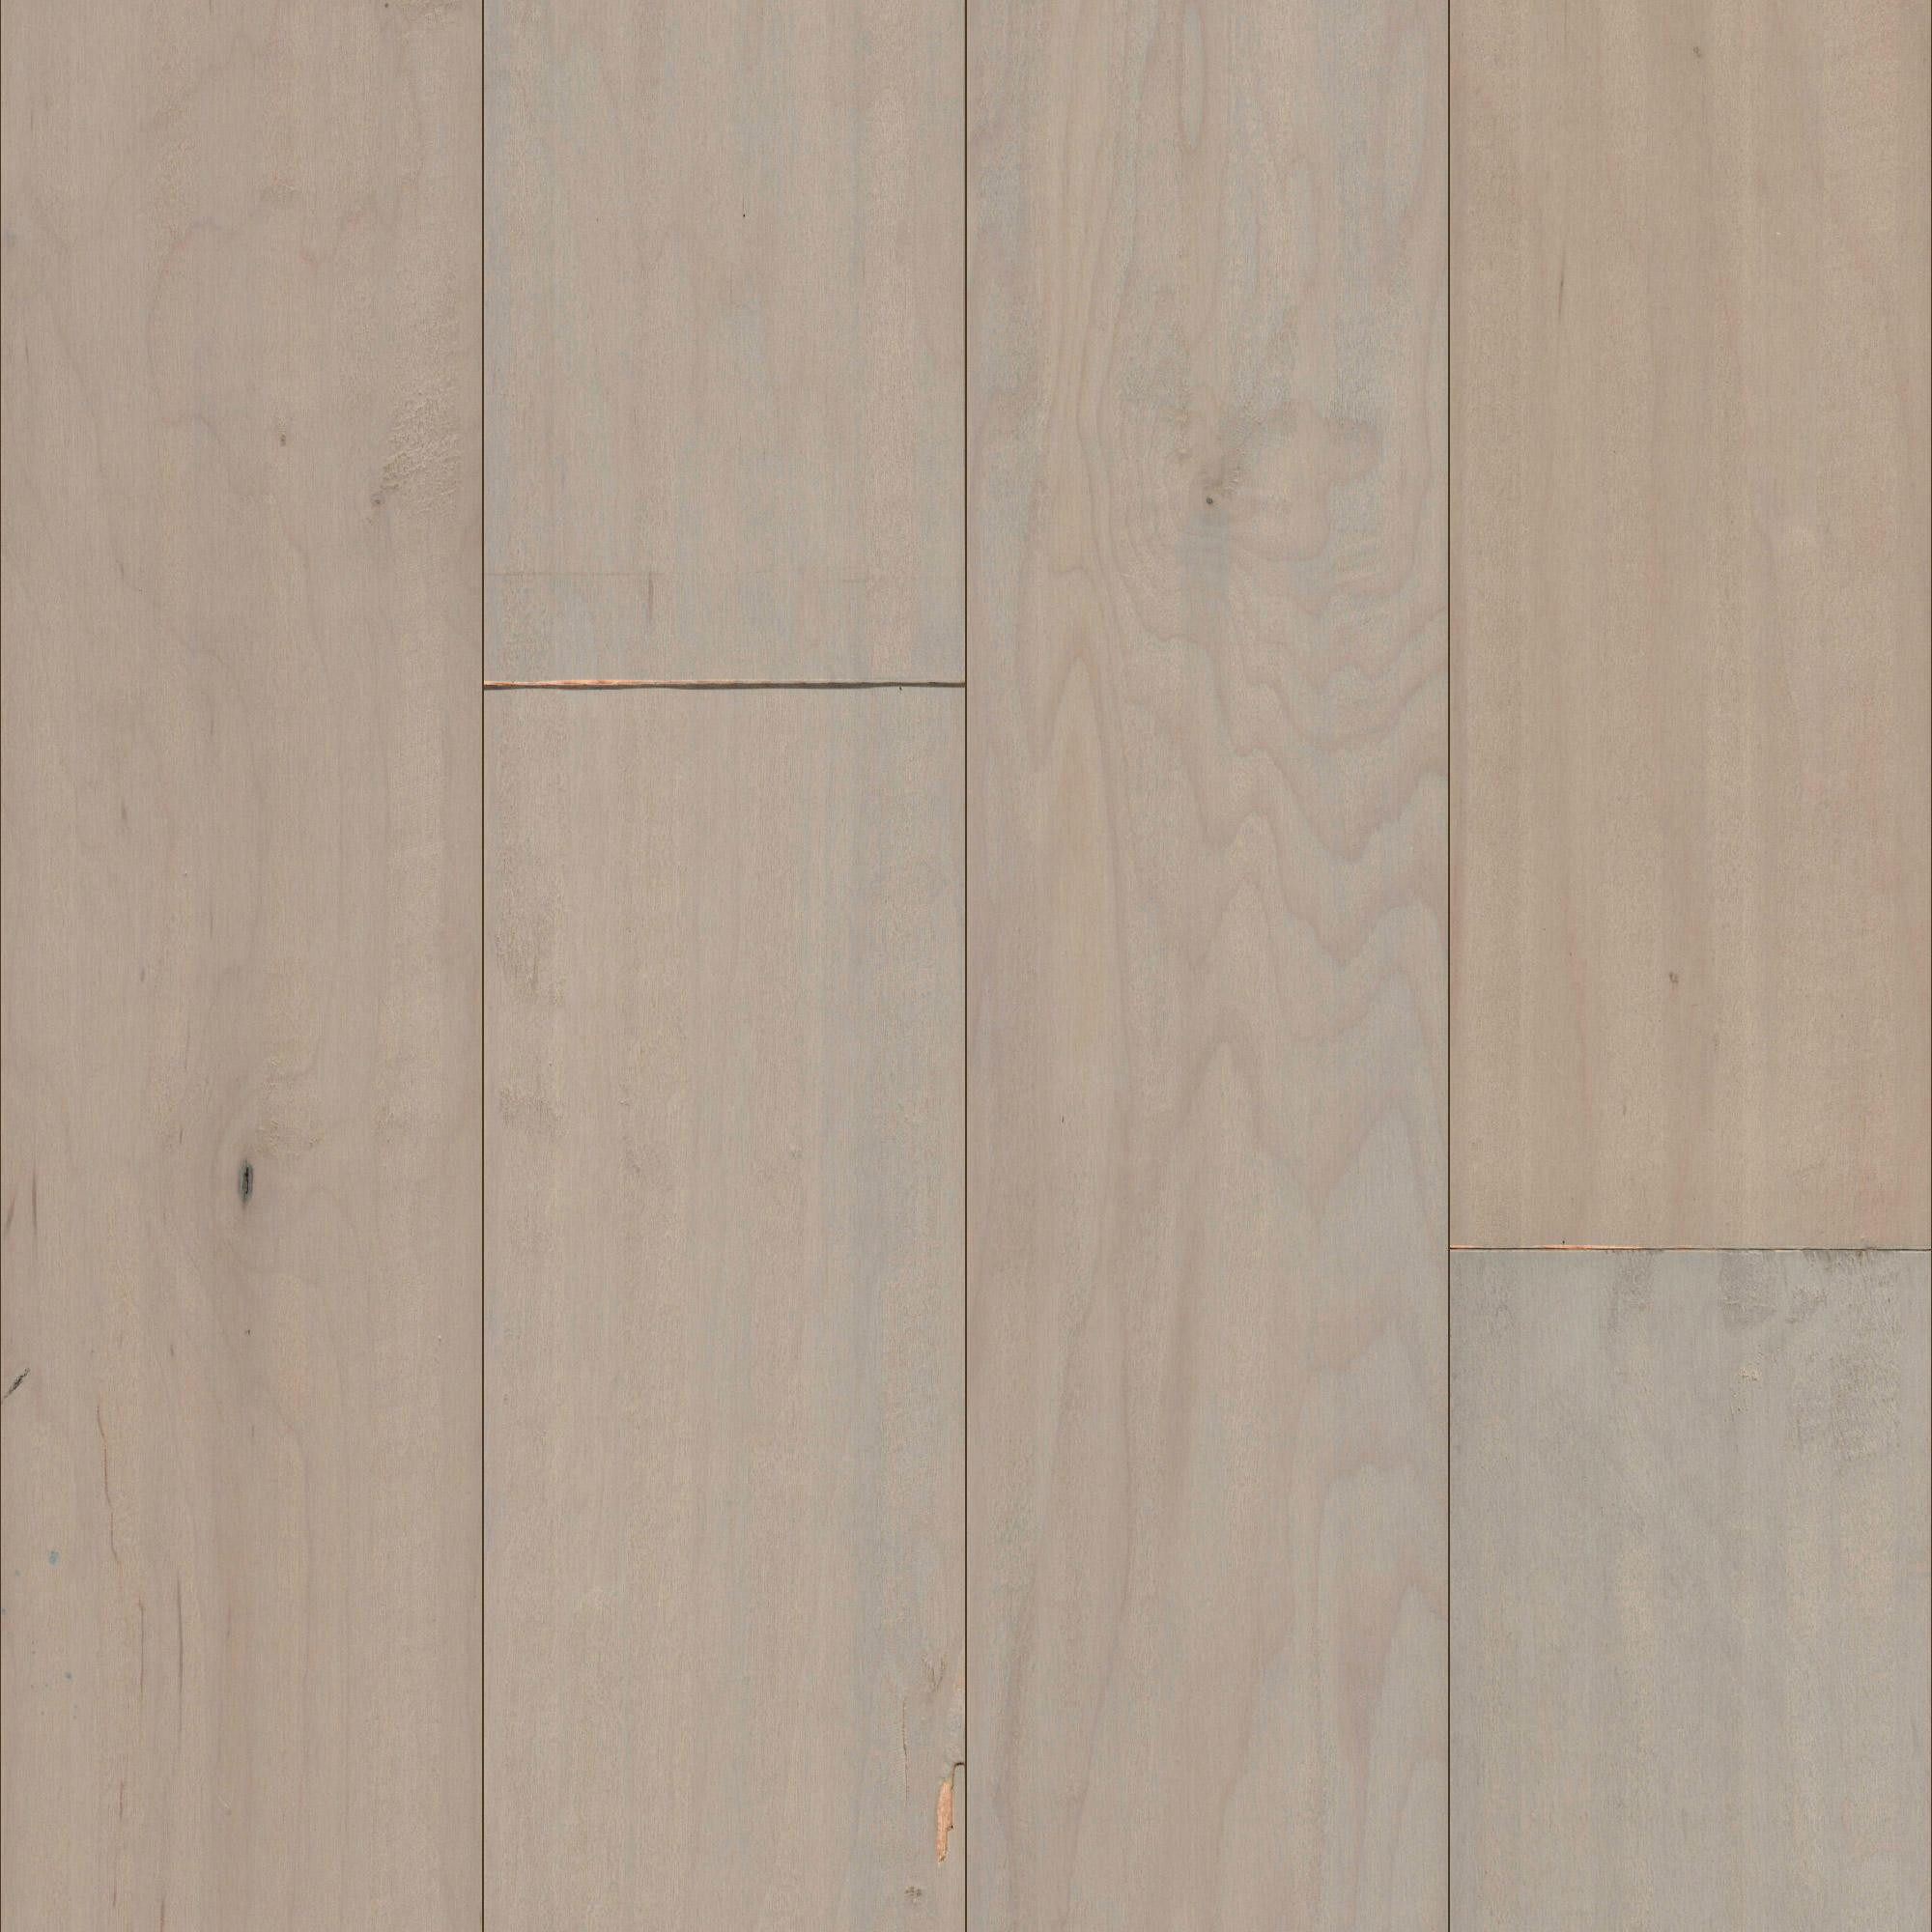 dark maple hardwood flooring of mullican lincolnshire sculpted maple frost 5 engineered hardwood for mullican lincolnshire sculpted maple frost 5 engineered hardwood flooring